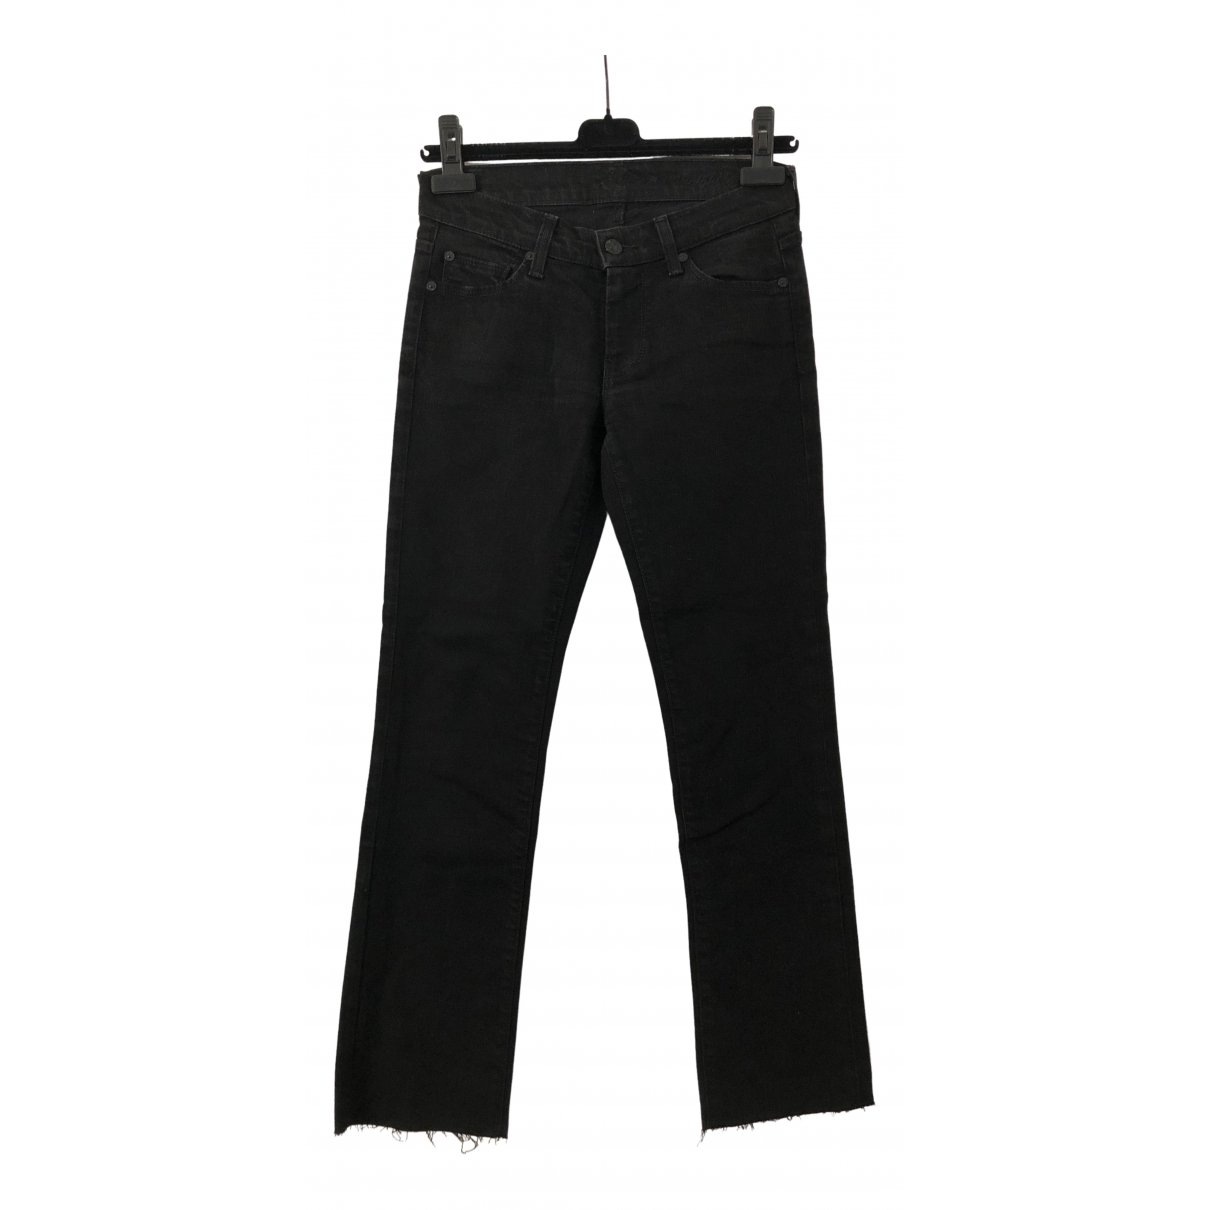 7 For All Mankind \N Black Cotton - elasthane Jeans for Women 24 US